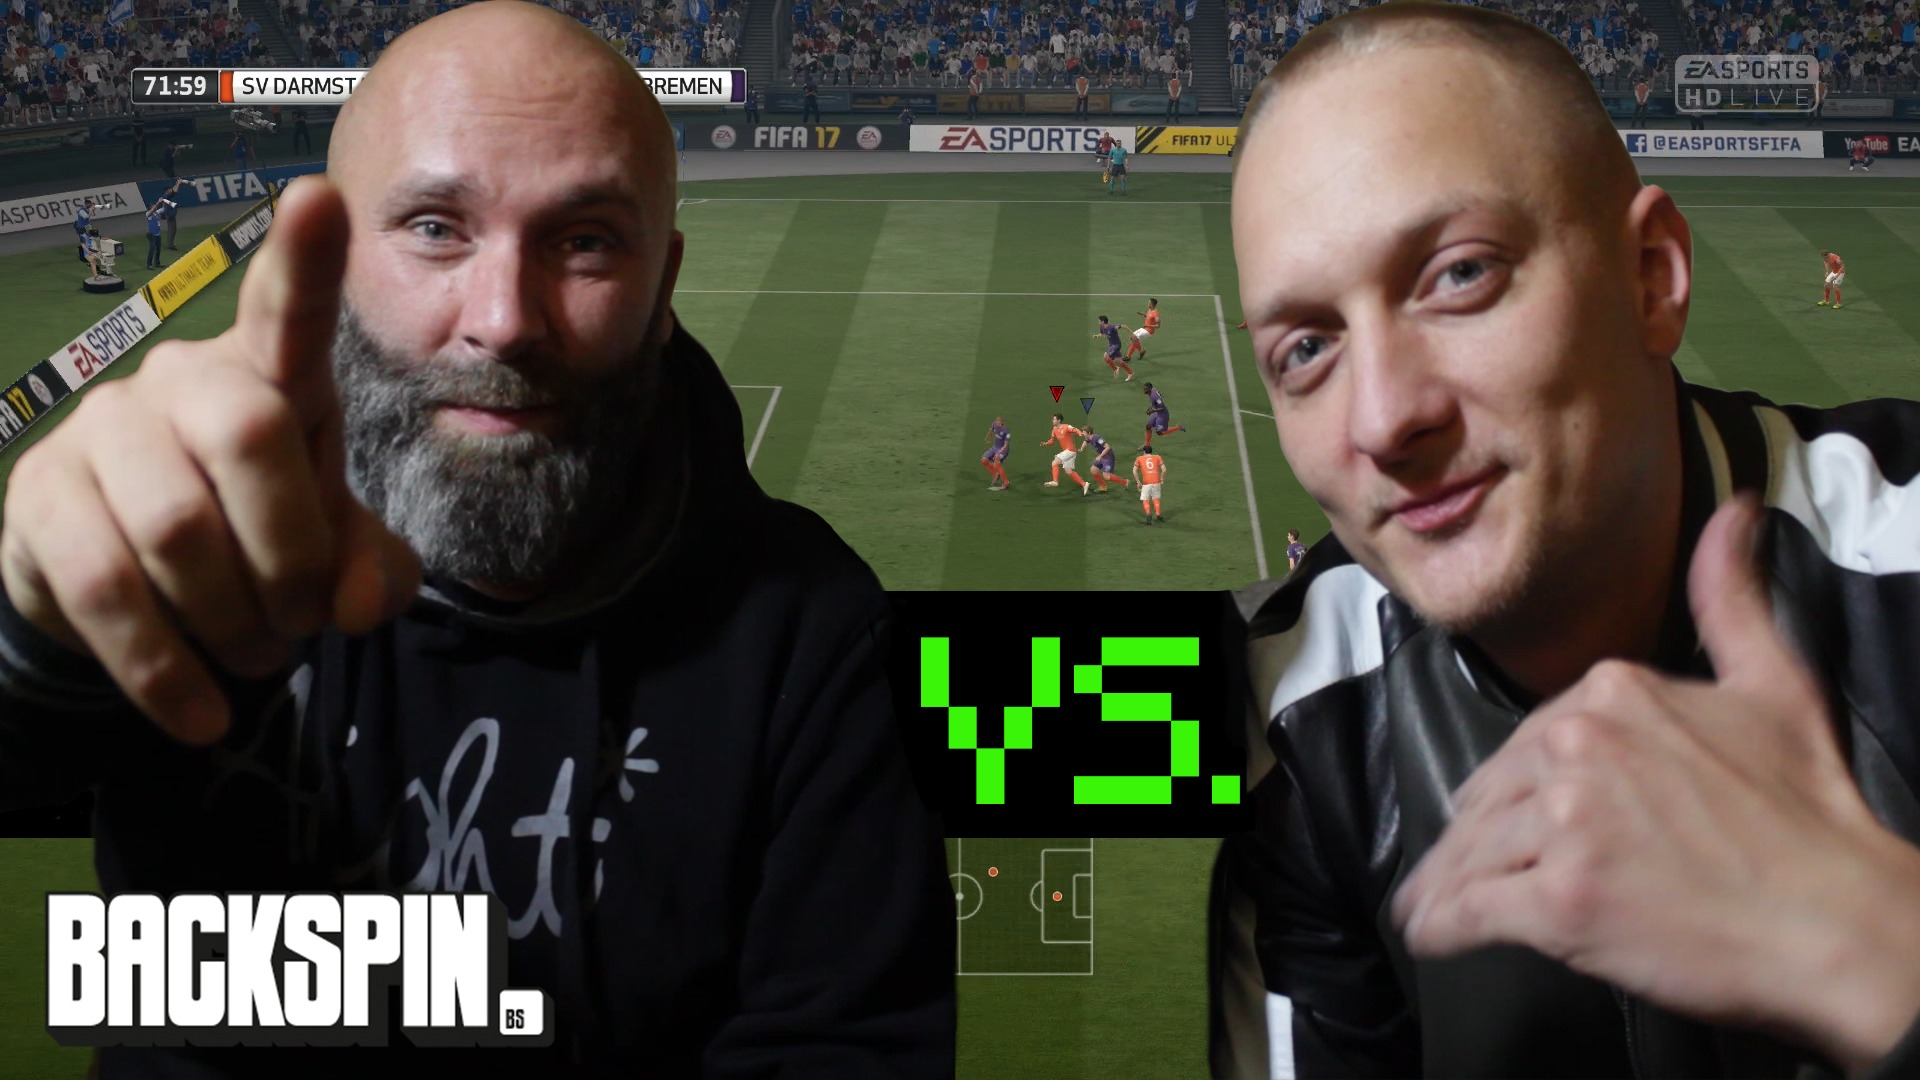 Olexesh, Fifa 17, BACKSPIN Play, Ayayay, 385ideal,